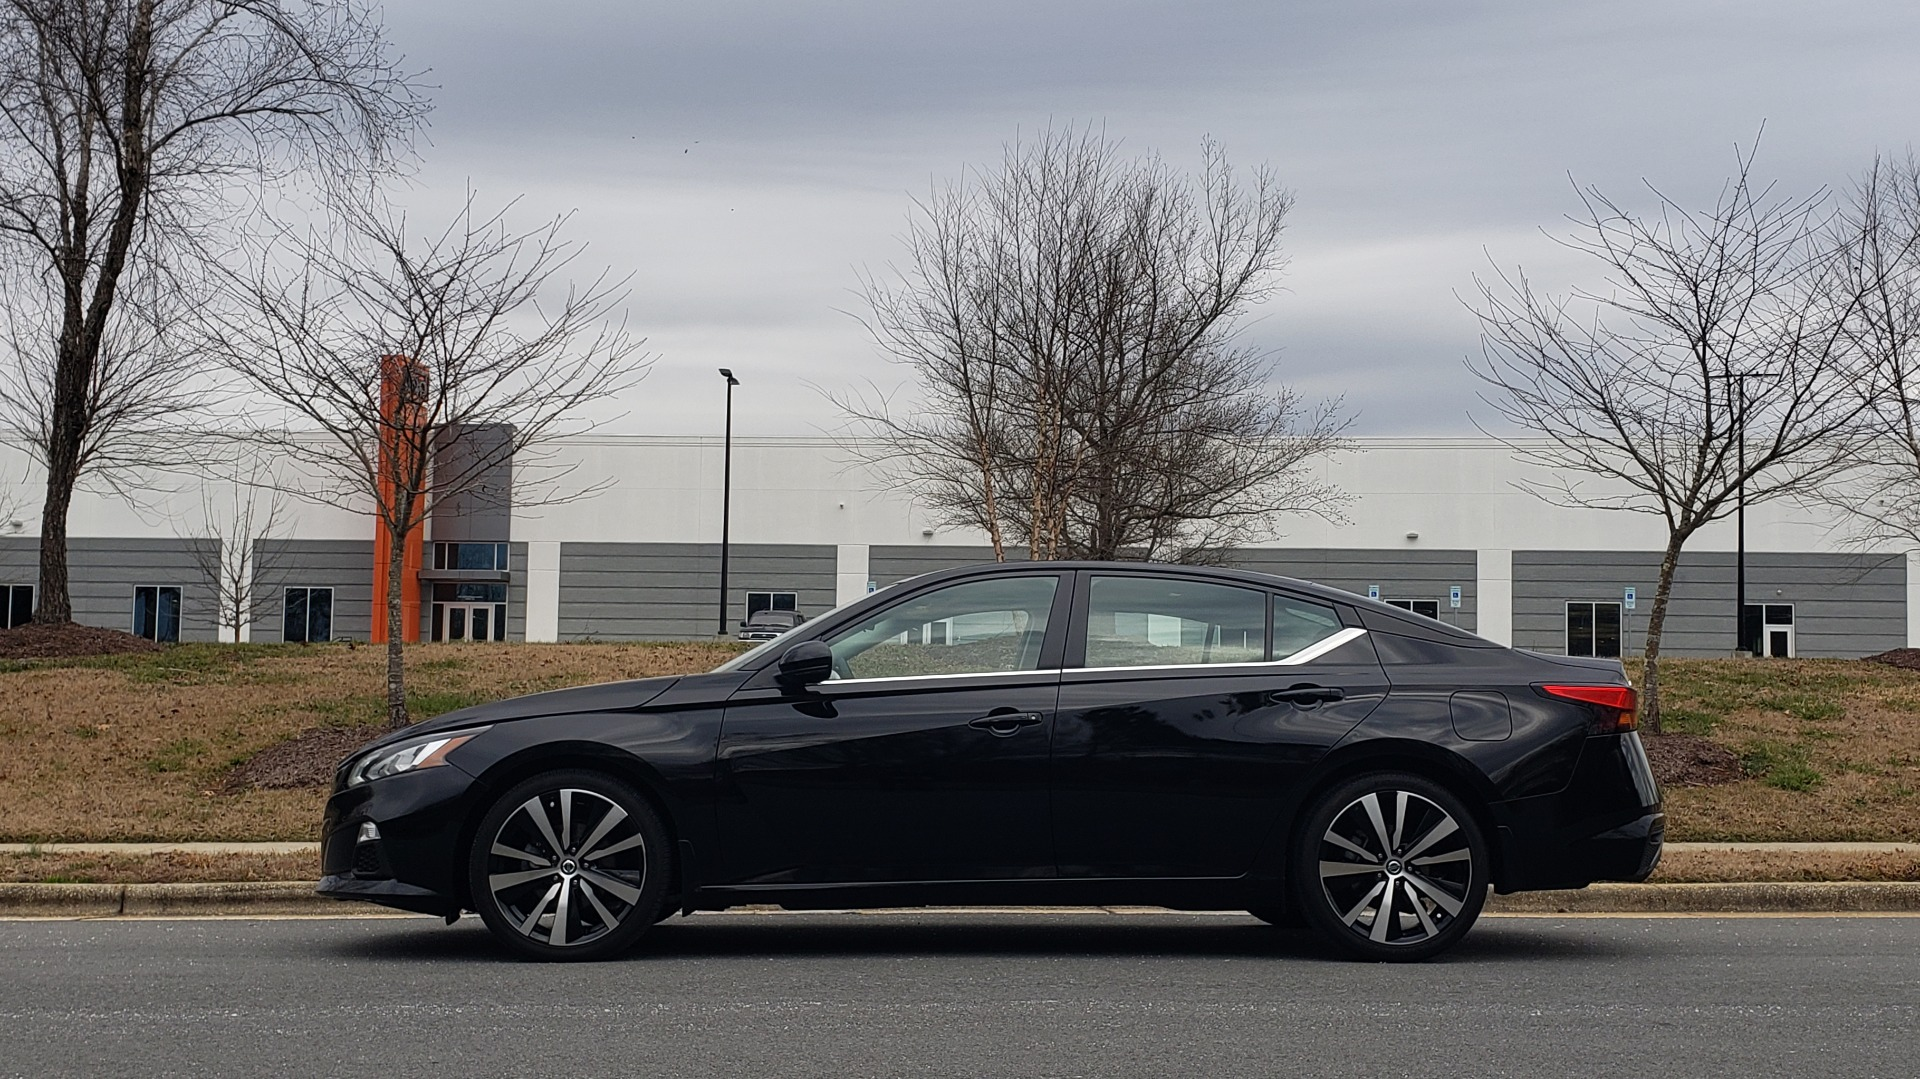 Used 2019 Nissan ALTIMA 2.5 SR PREMIUM / 2.5L / CVT TRANS / HTD STS / SUNROOF / REARVIEW for sale Sold at Formula Imports in Charlotte NC 28227 3